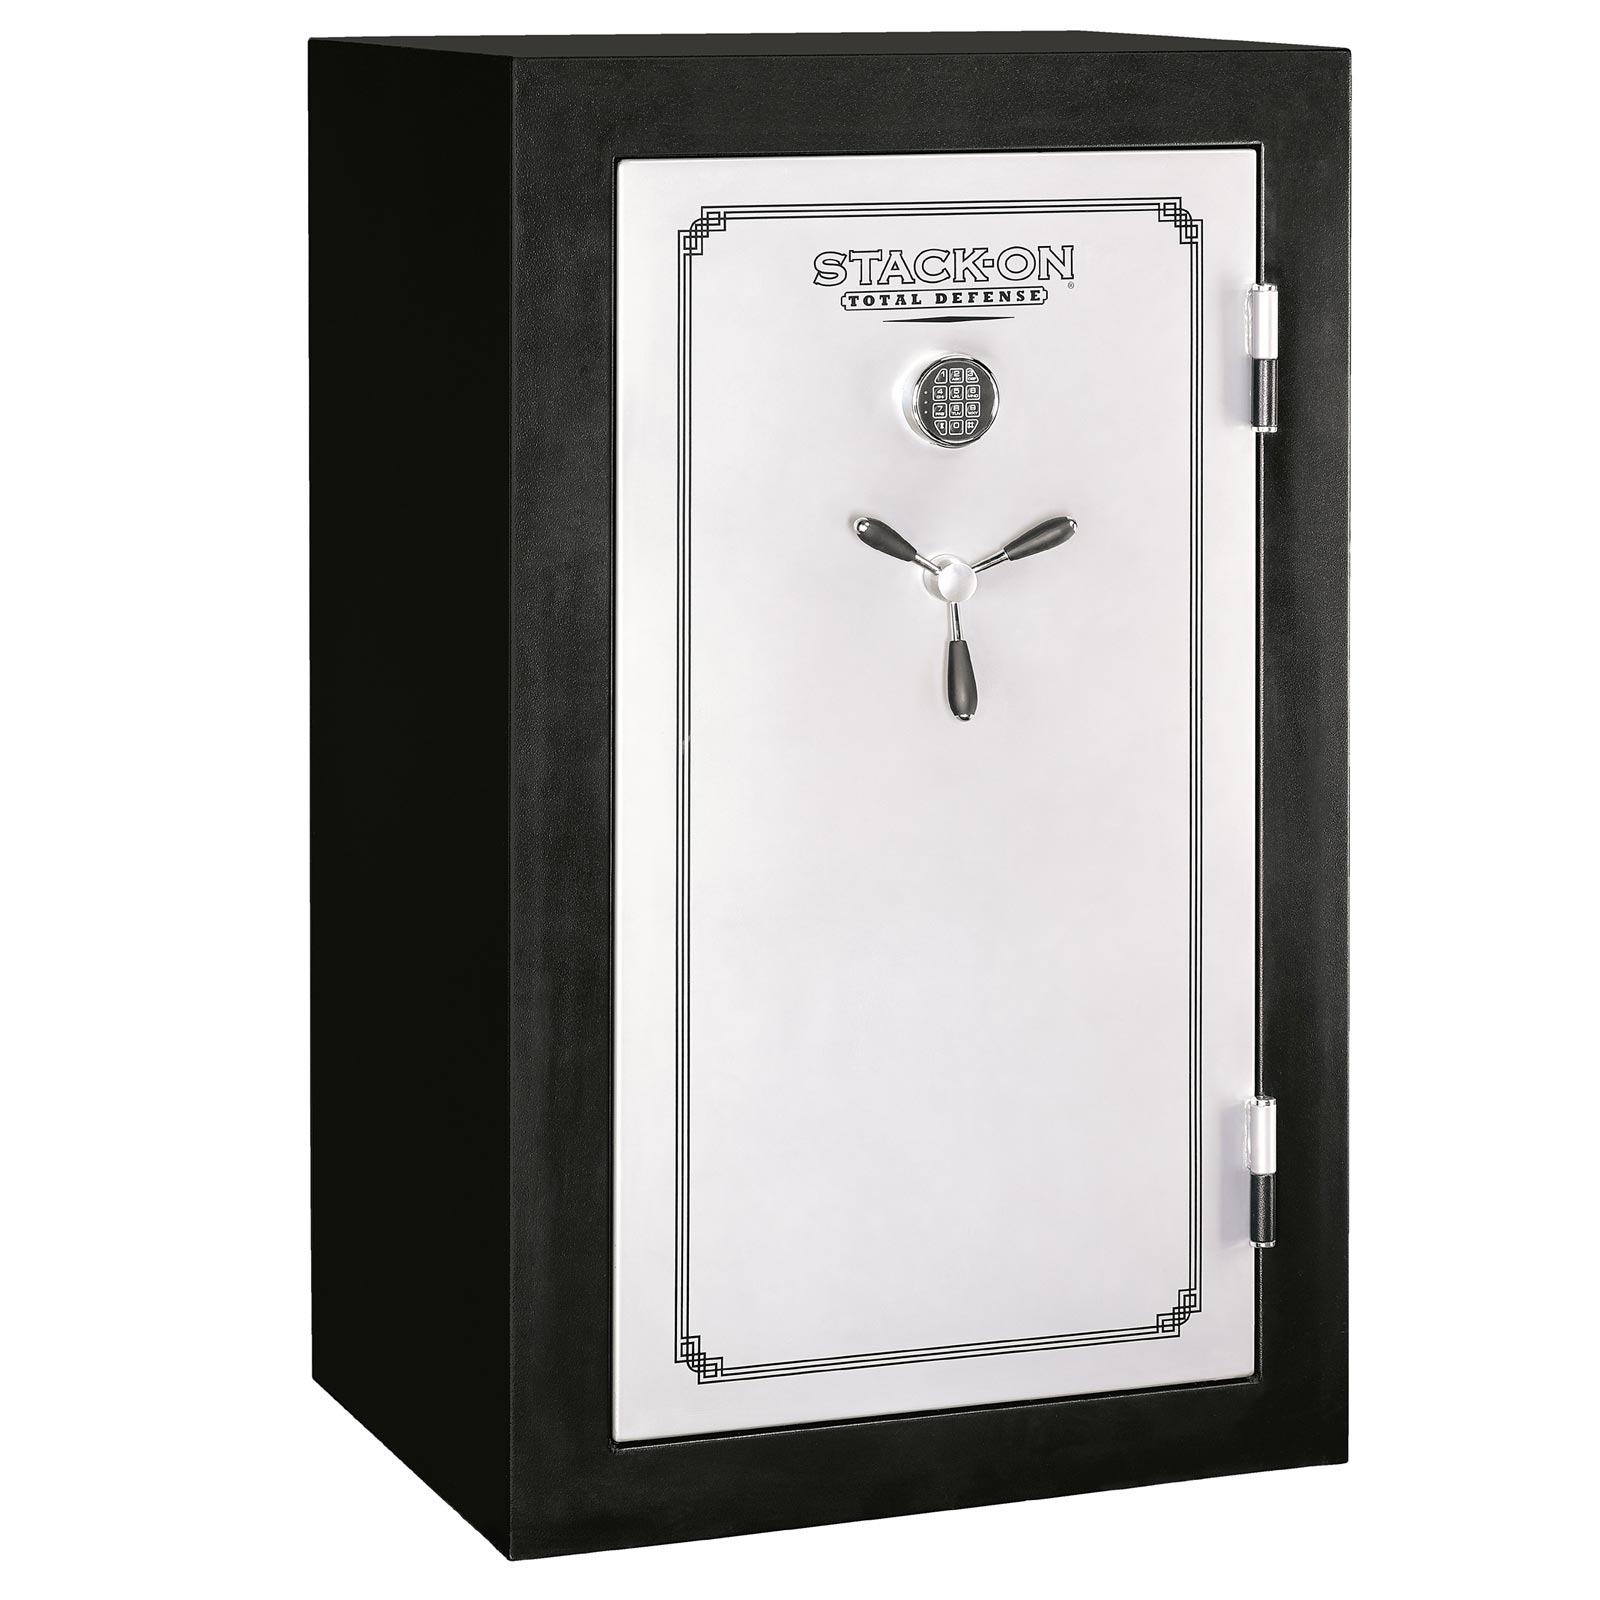 Stack-on TD-36-SB-E Fire Resistant & Waterproof Fully Convertible Safe w/ Electronic Lock - 36-Gun